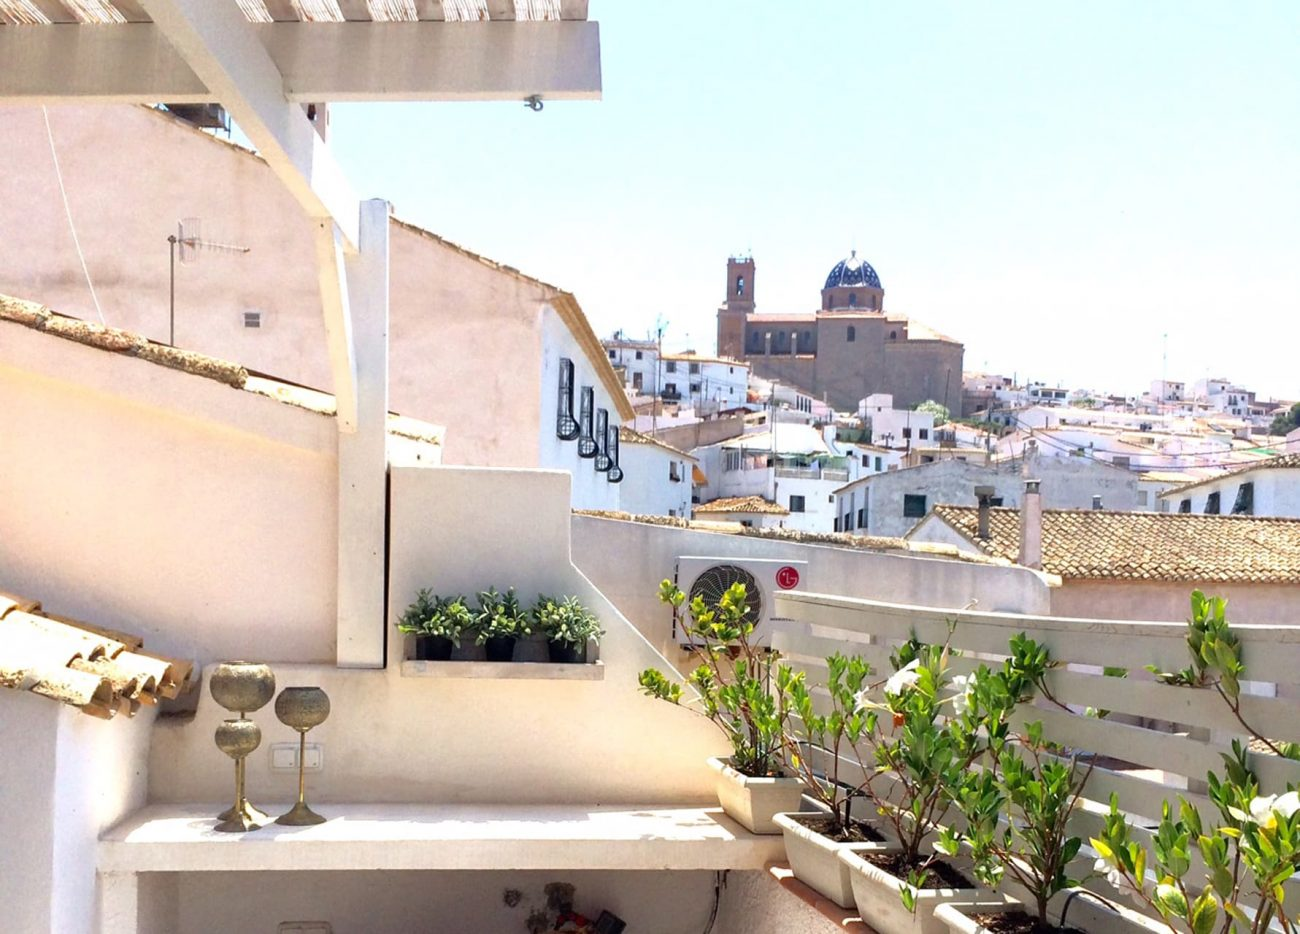 The best things to do in Altea